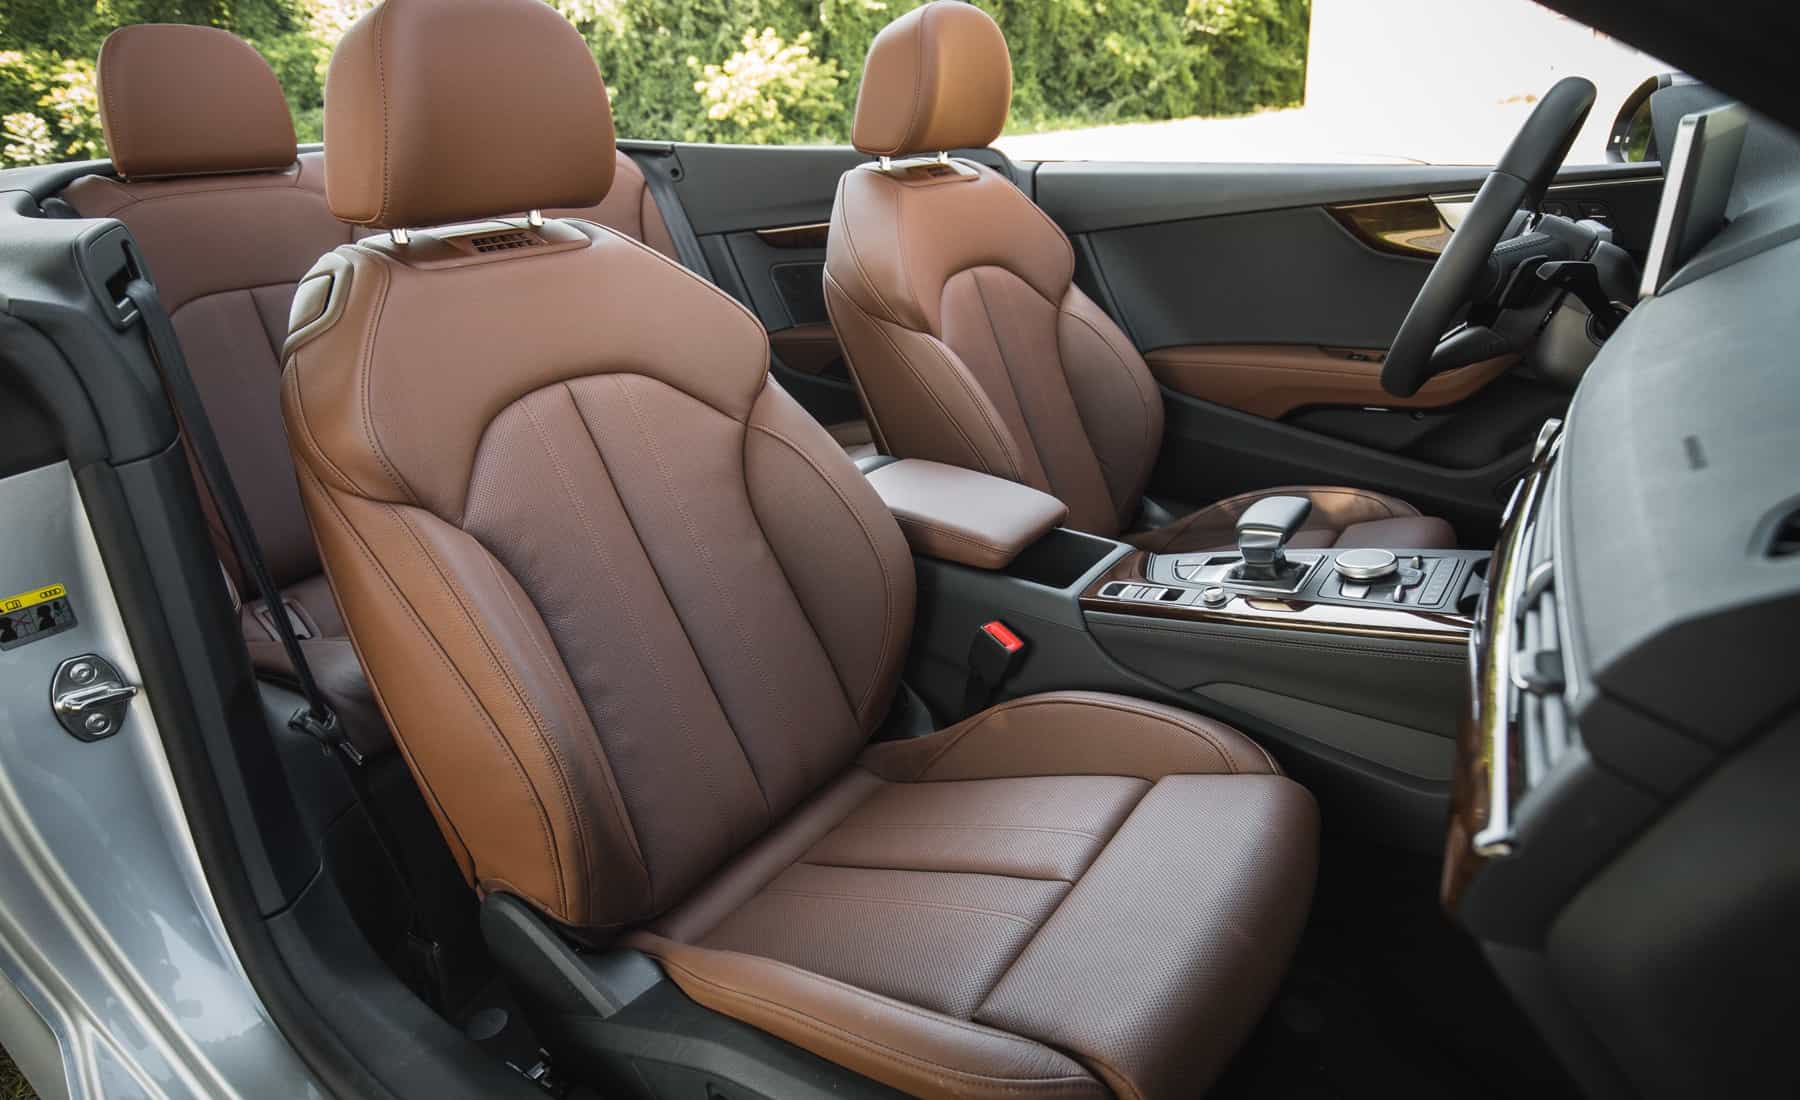 2018 Audi A5 Cabriolet Interior Seats (Photo 23 of 45)